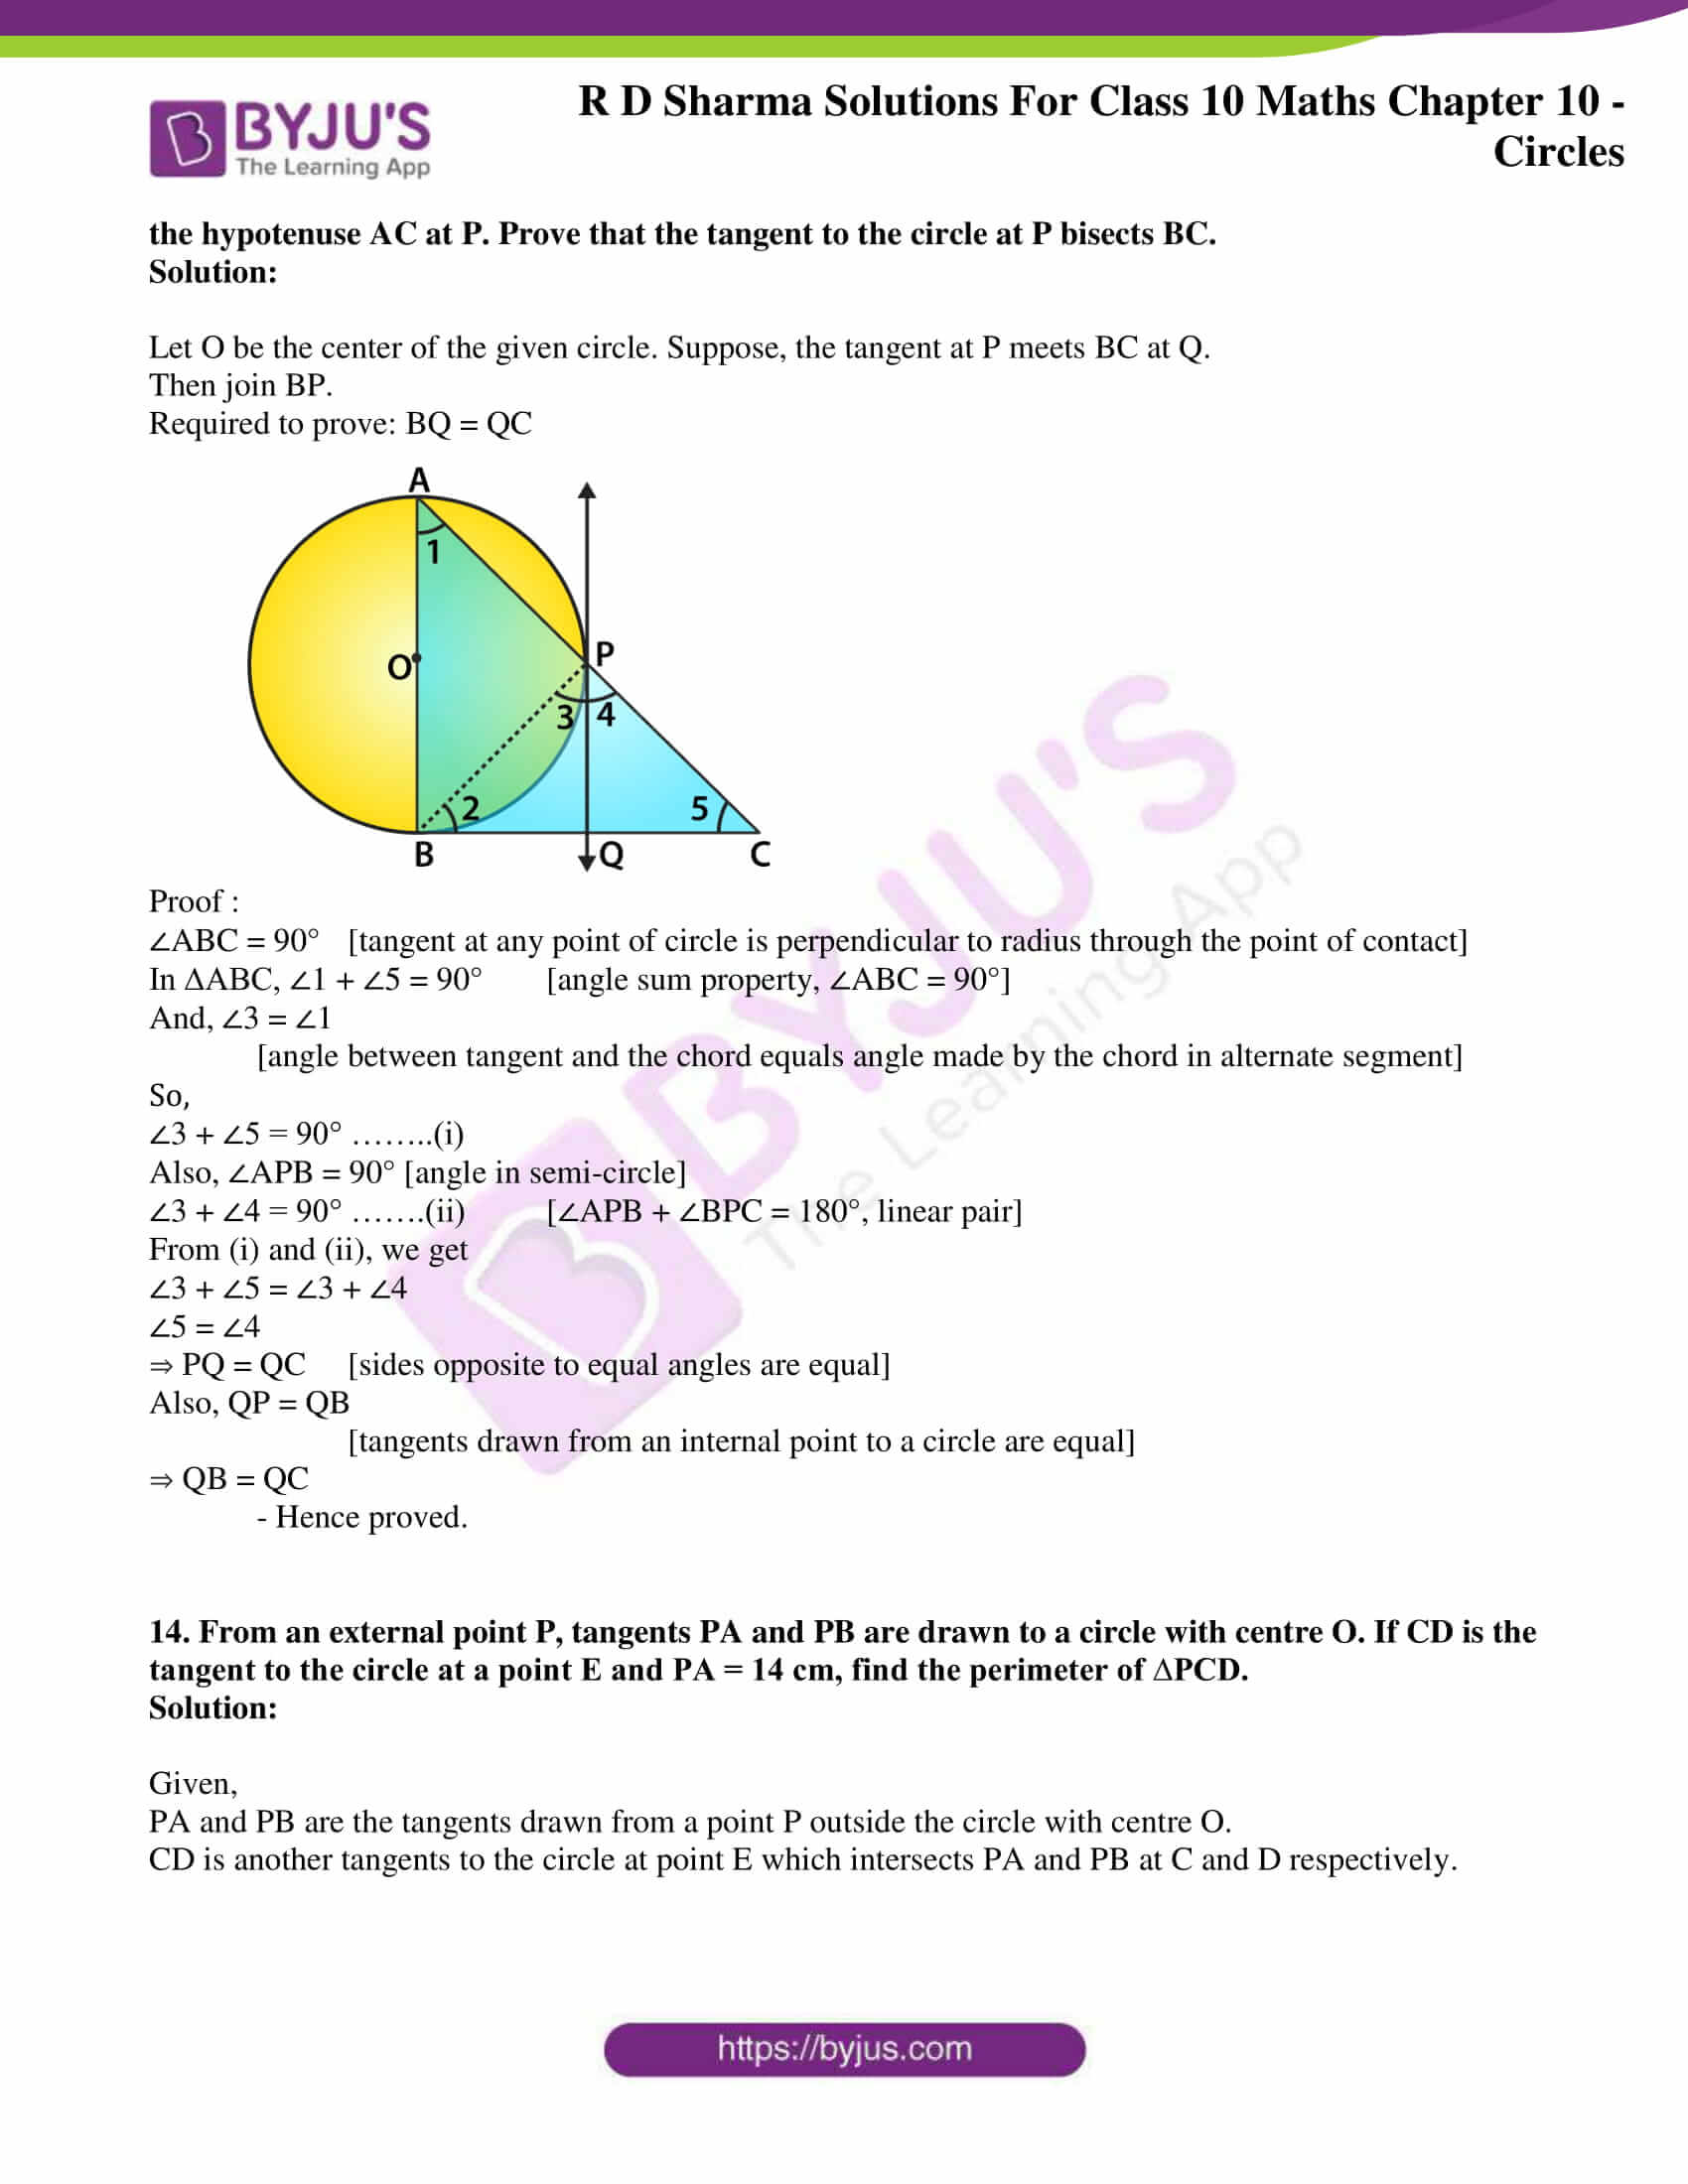 rd sharma class 10 chapter 10 circles solutions exercise 2 09